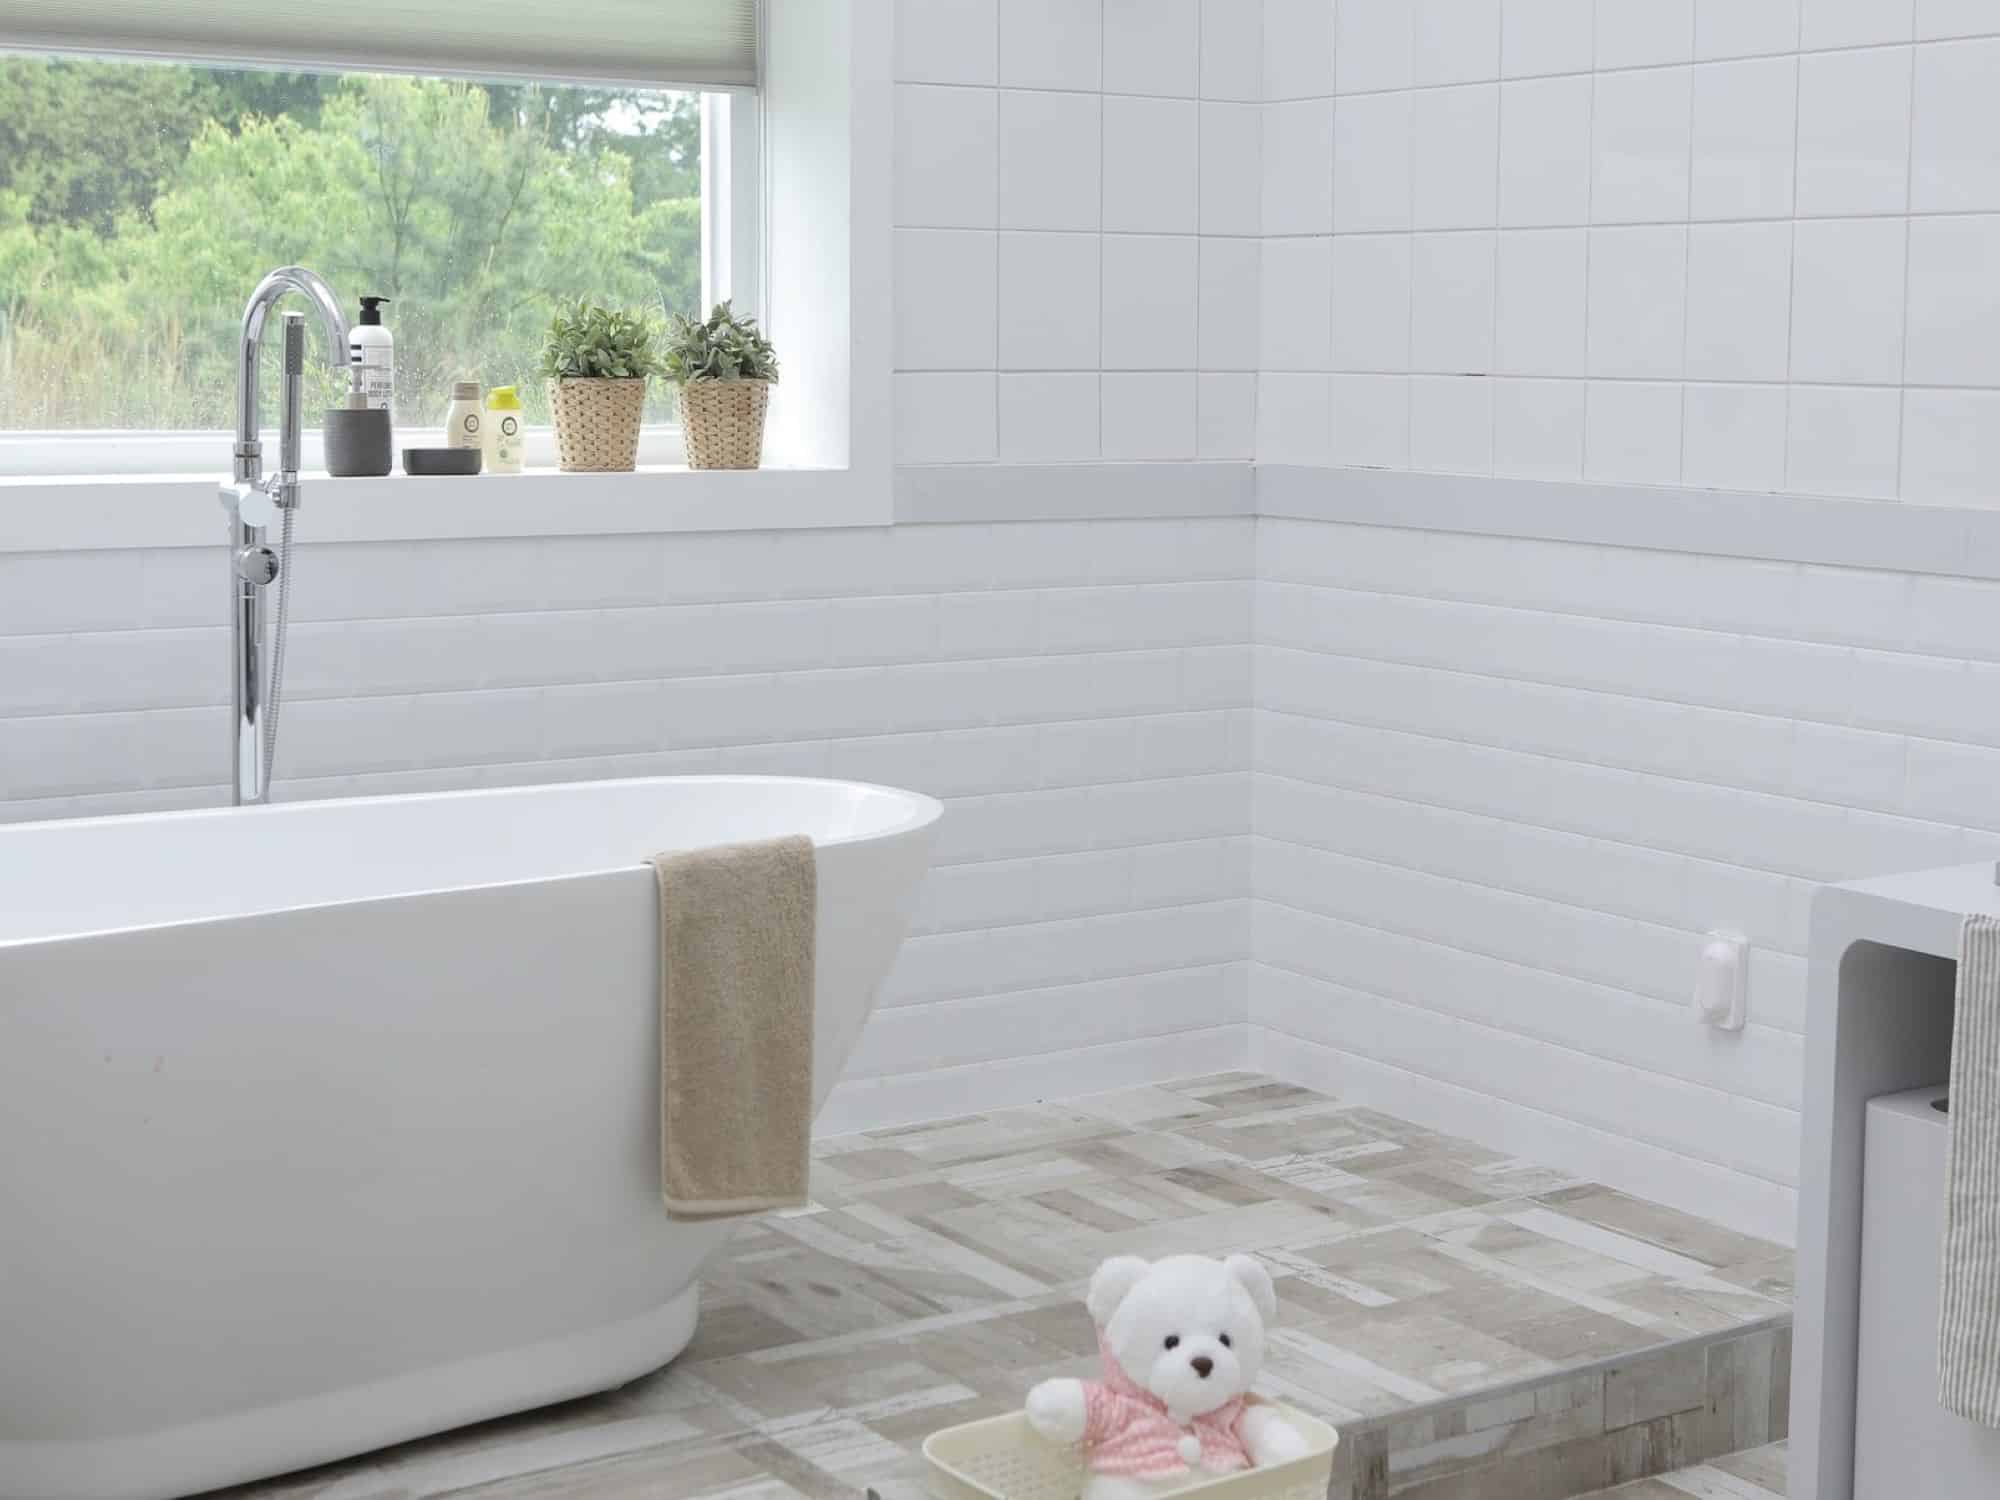 Mold and Water Safety in Your Home